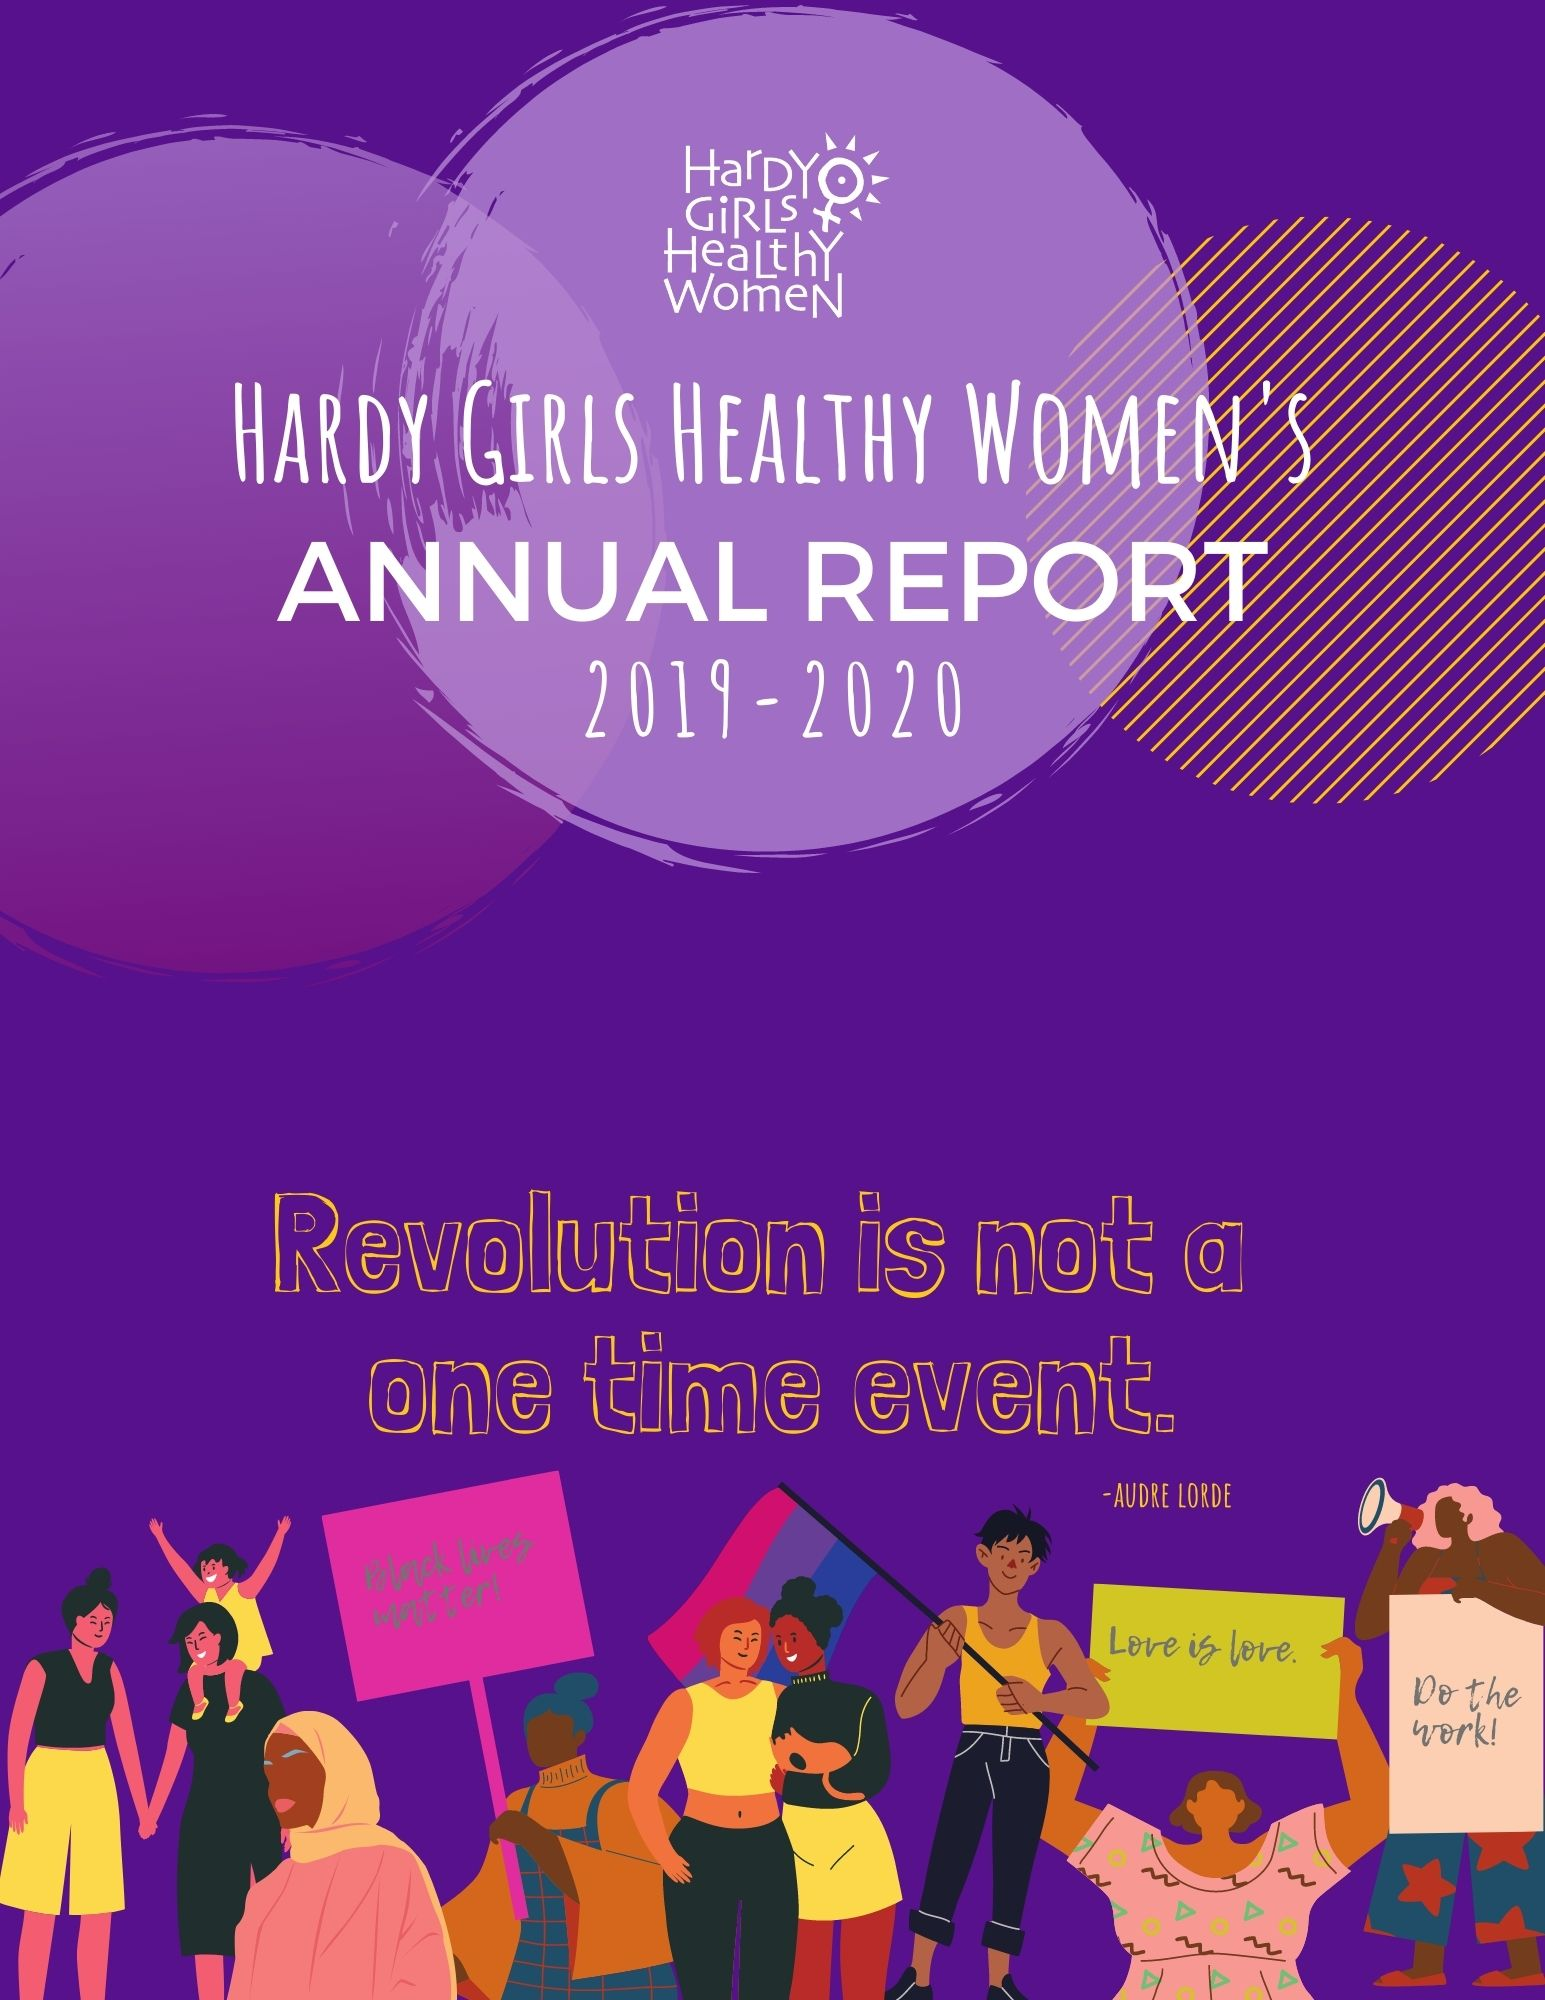 HGHW 2019-2020 Annual Report